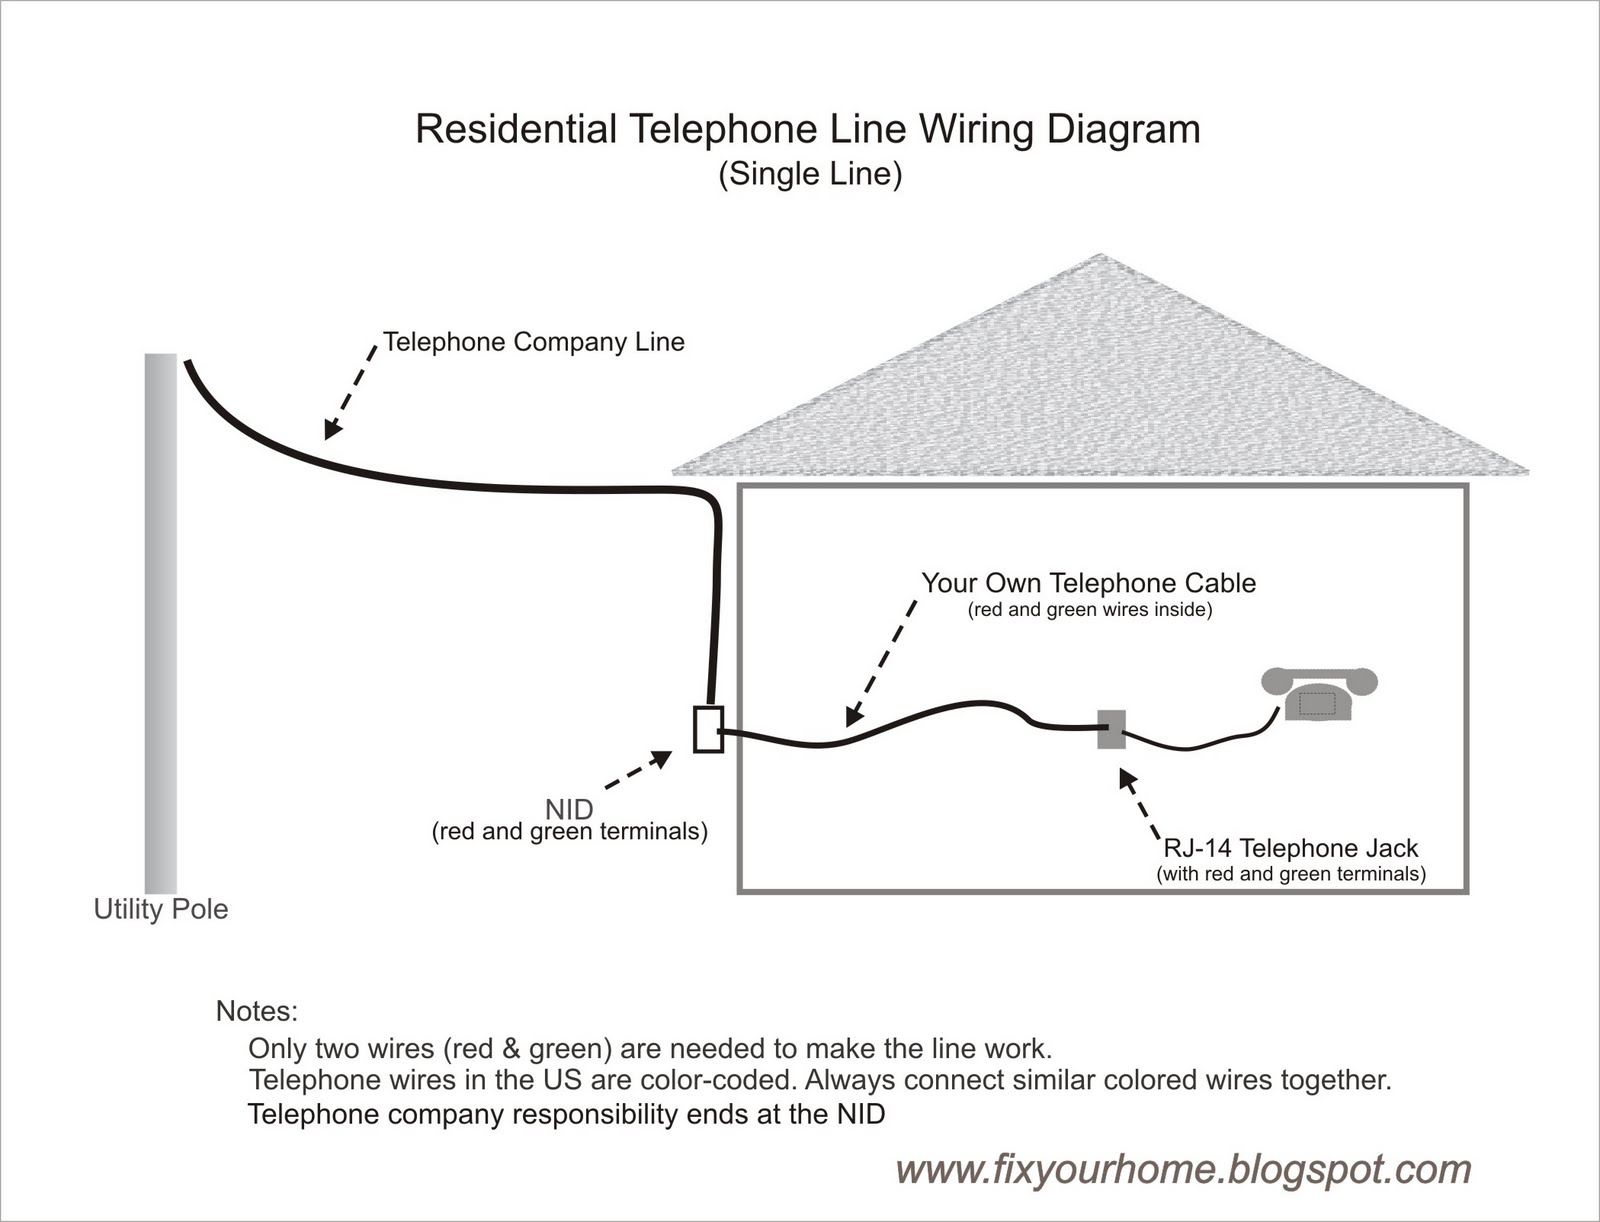 hotel telephone wiring diagram telephone wiring diagram on side of house fix your home: how to wire your own telephone line